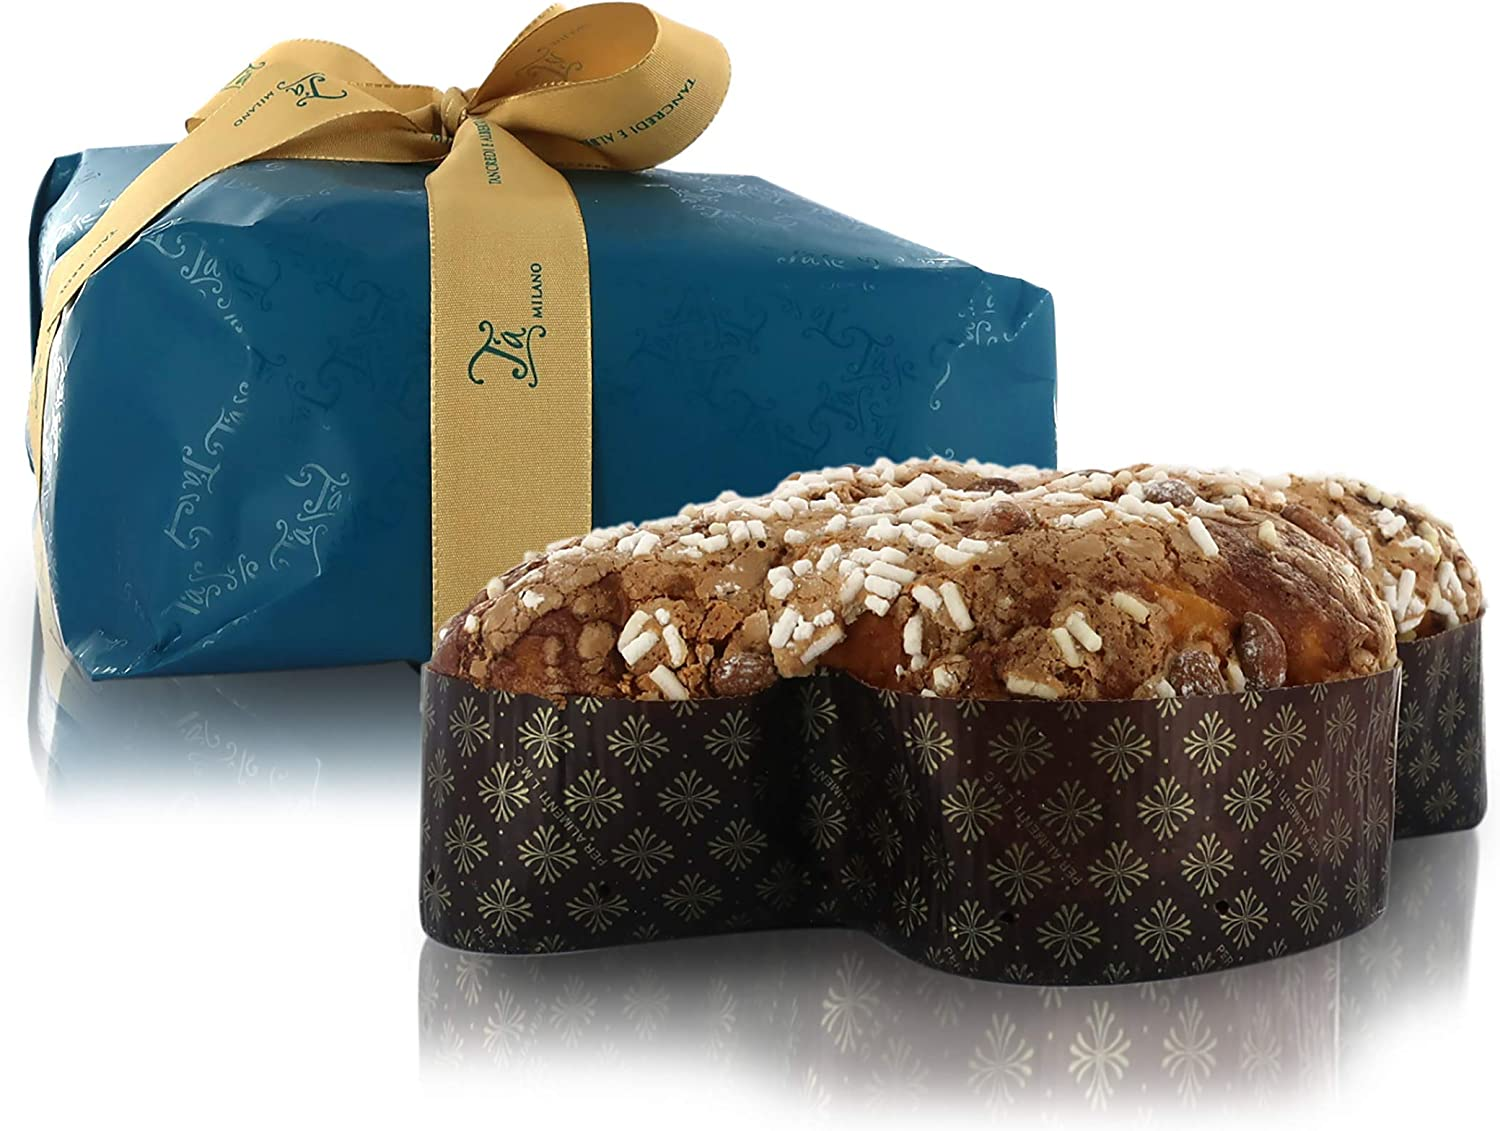 Classic Colomba Cake, Traditional Italian Easter Cake with Almond-Flavoured Frosting, Baked in Italy, 1 Kg / 35.27oz / 2.2lb